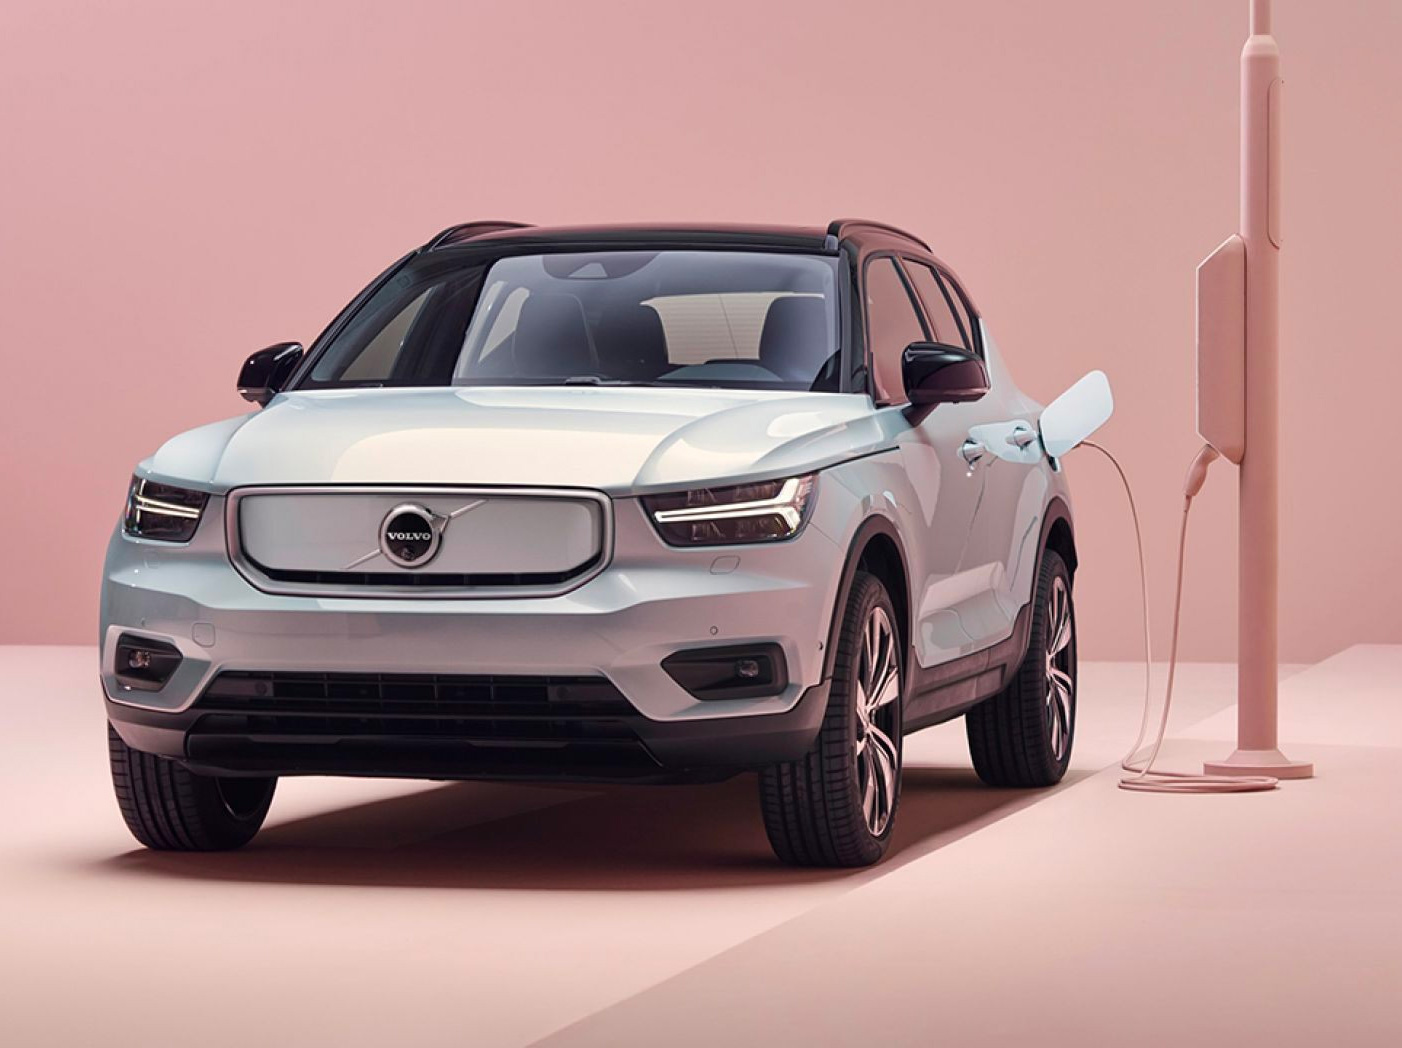 Volvo Rolls Out Its First All-Electric: The XC40 Recharge at werd.com